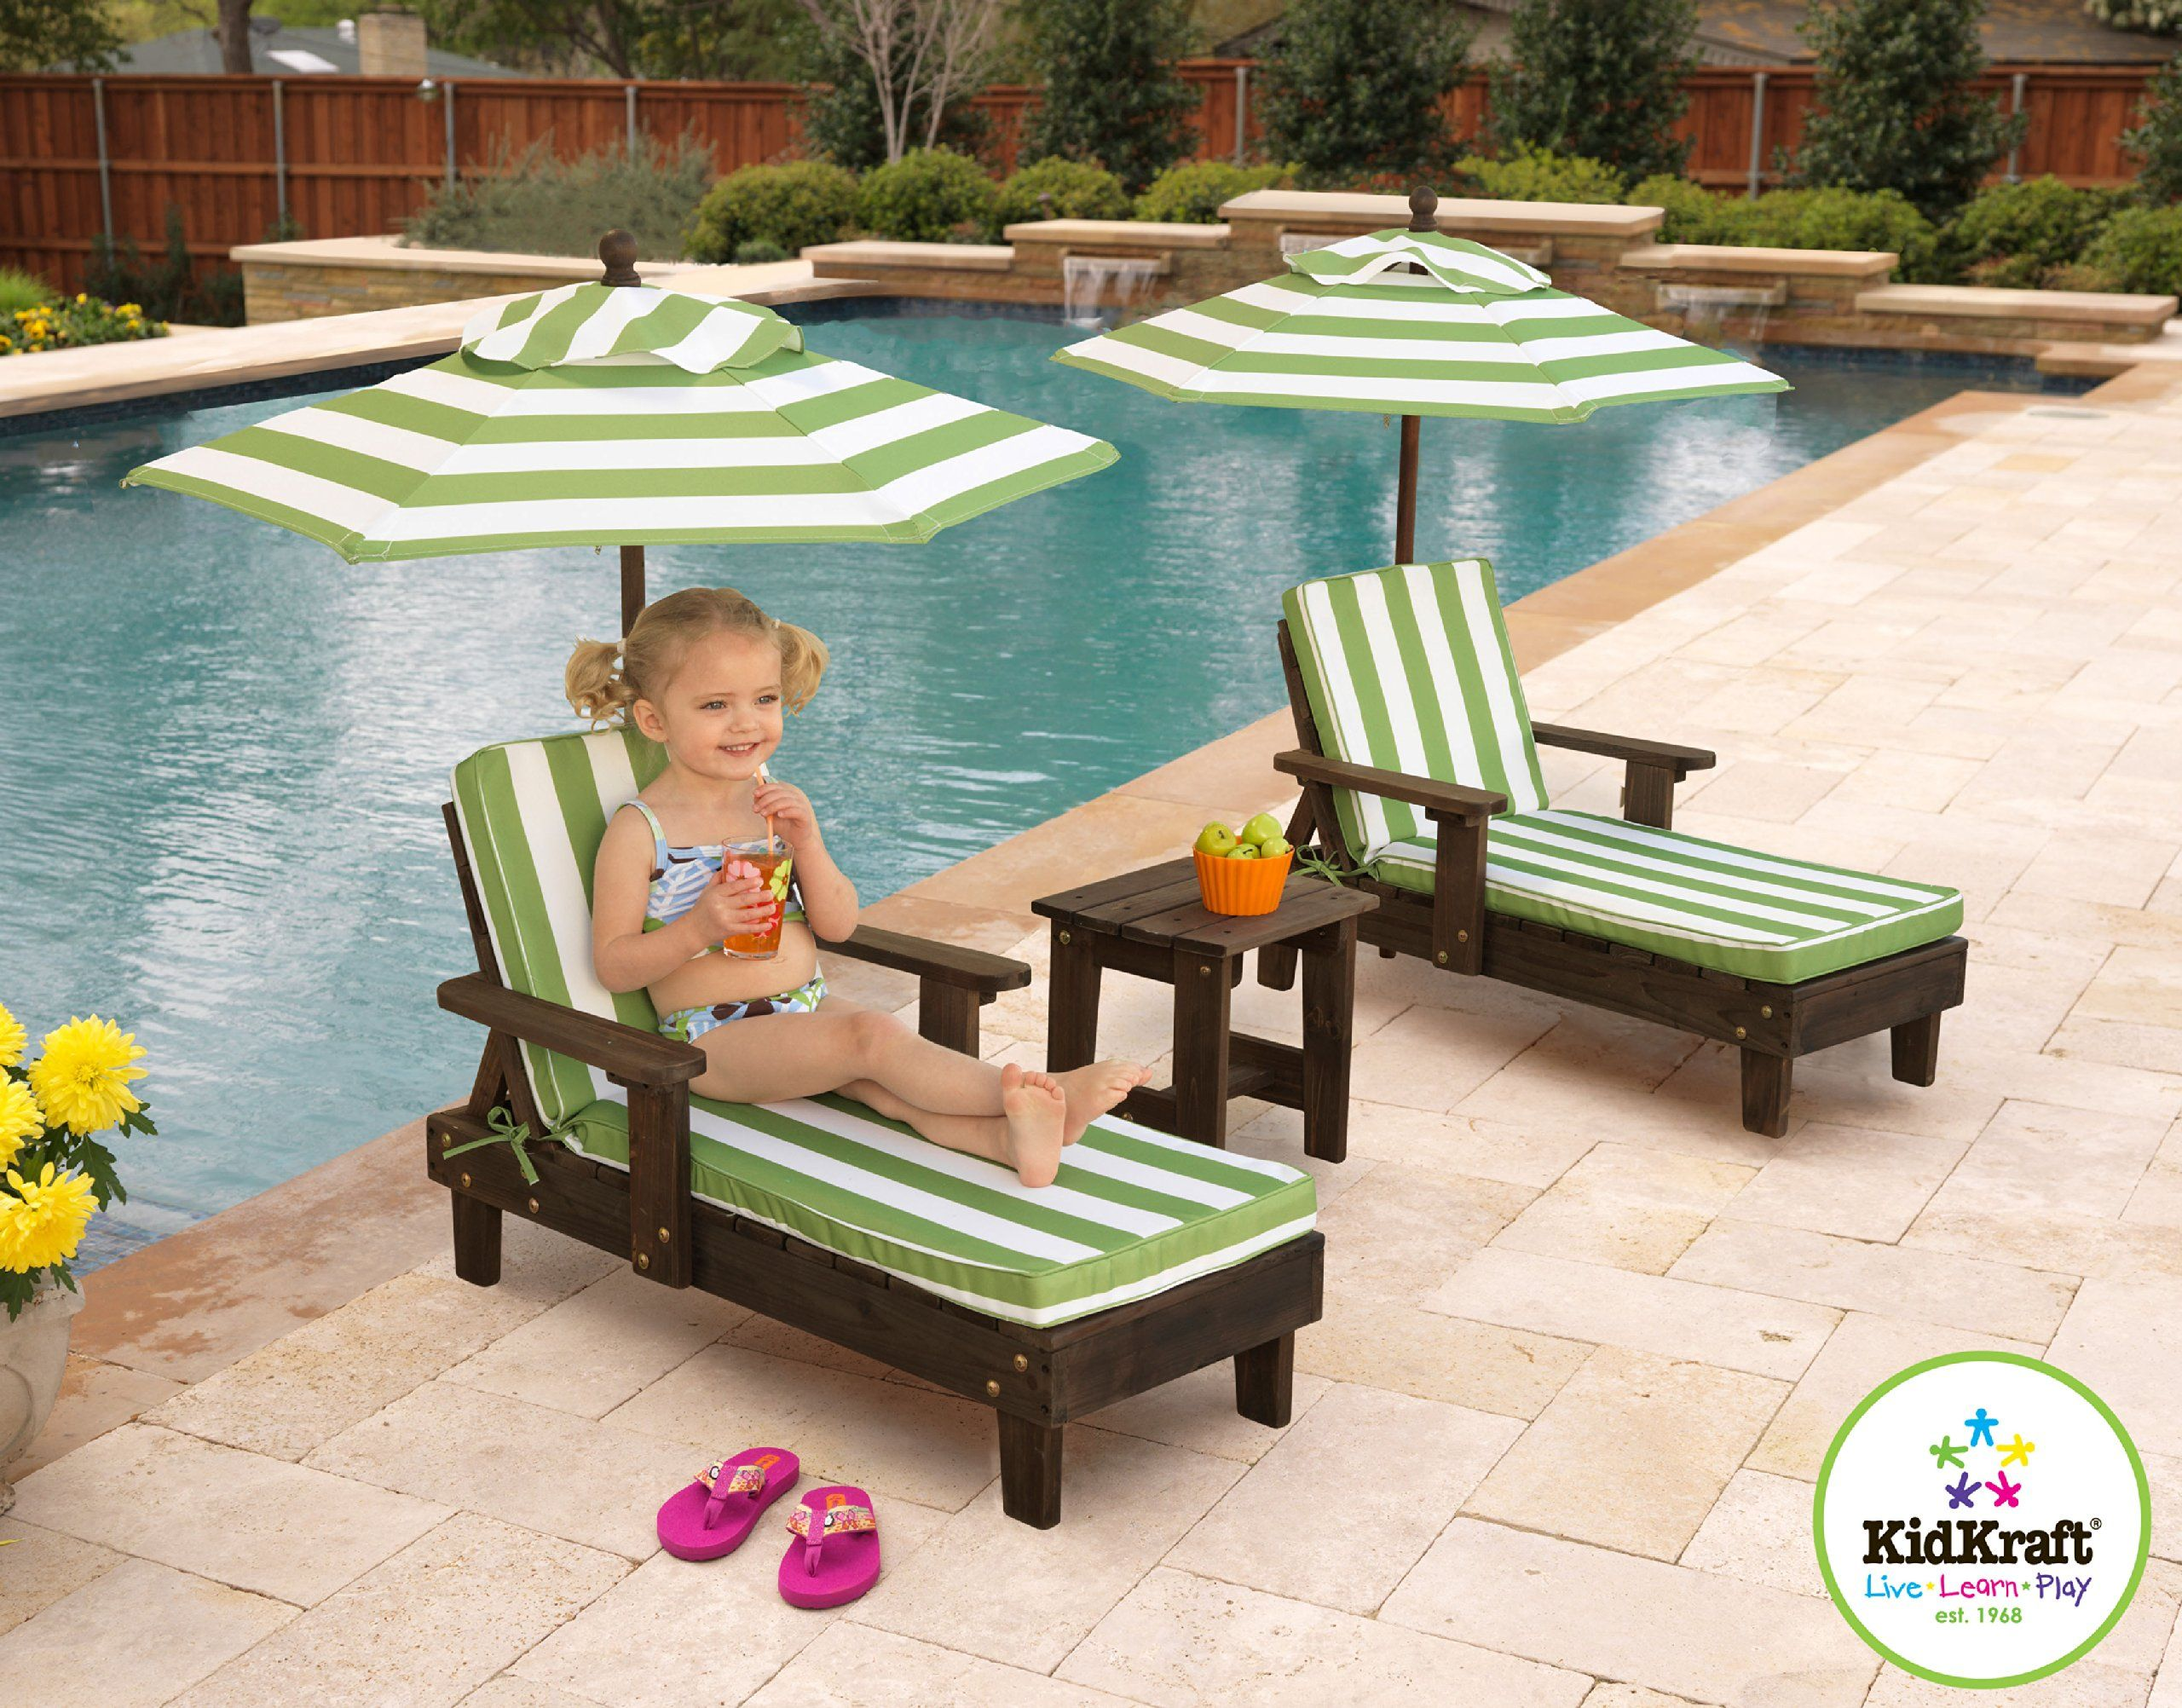 Kidkraft 2 chaise chair set with 2 umbrellas and table